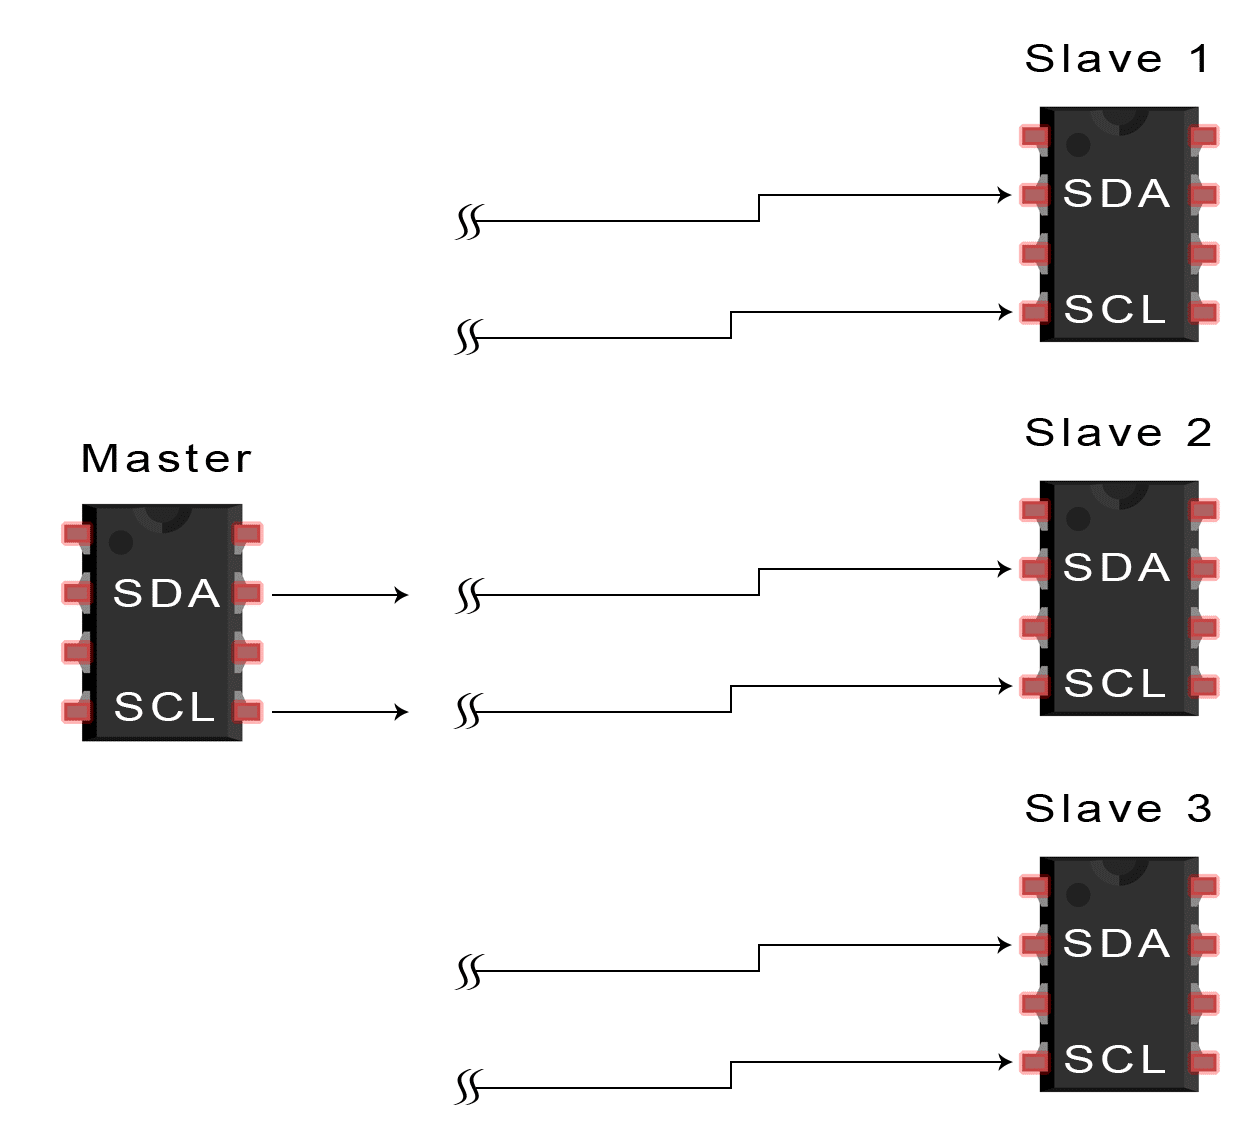 hight resolution of the master sends the start condition to every connected slave by switching the sda line from a high voltage level to a low voltage level before switching